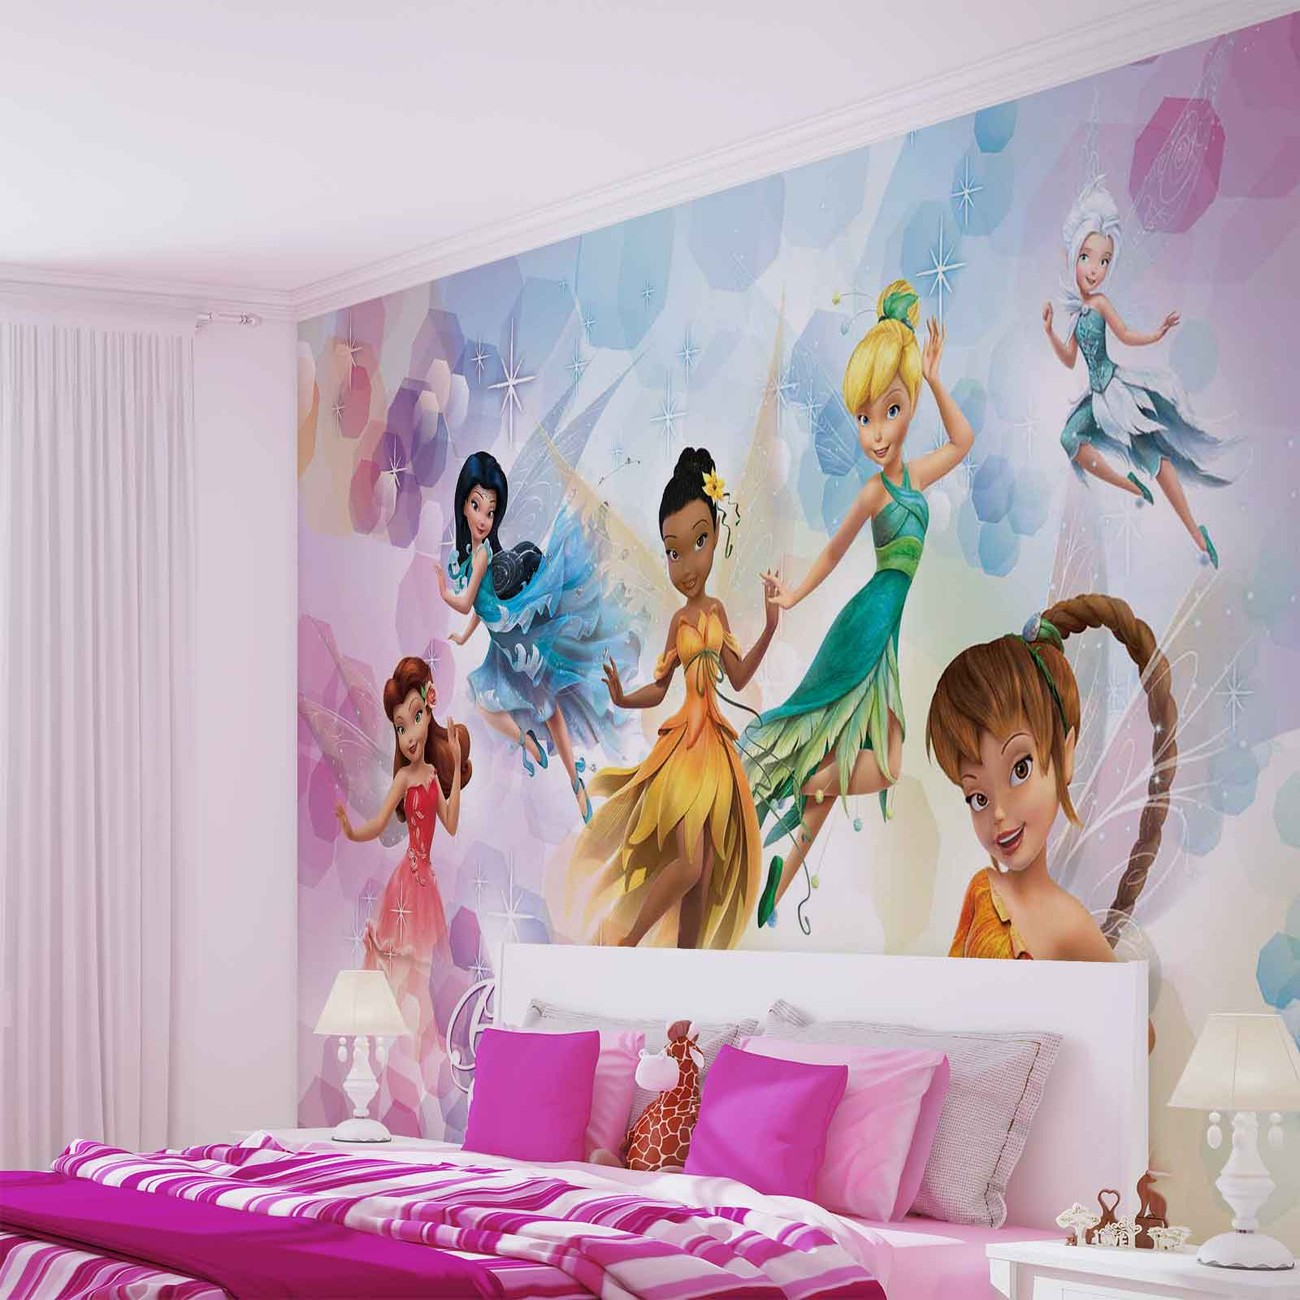 Disney fairies iridessa fawn rosetta wall paper mural for Fairies wall mural